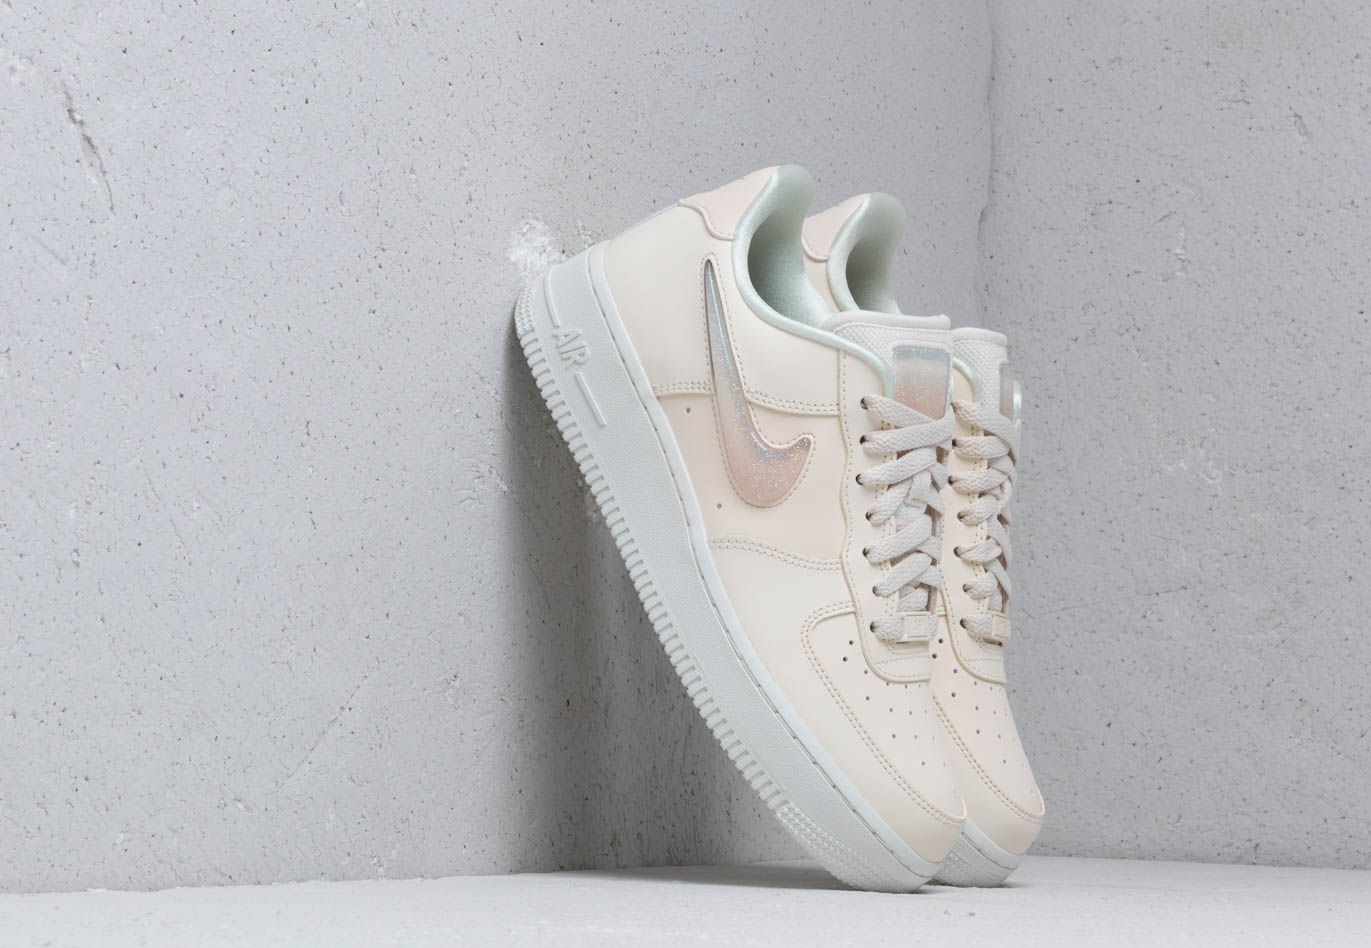 619ebc77642 Nike W Air Force 1  07 Se Prm Pale Ivory  Summit White-Guava Ice ...